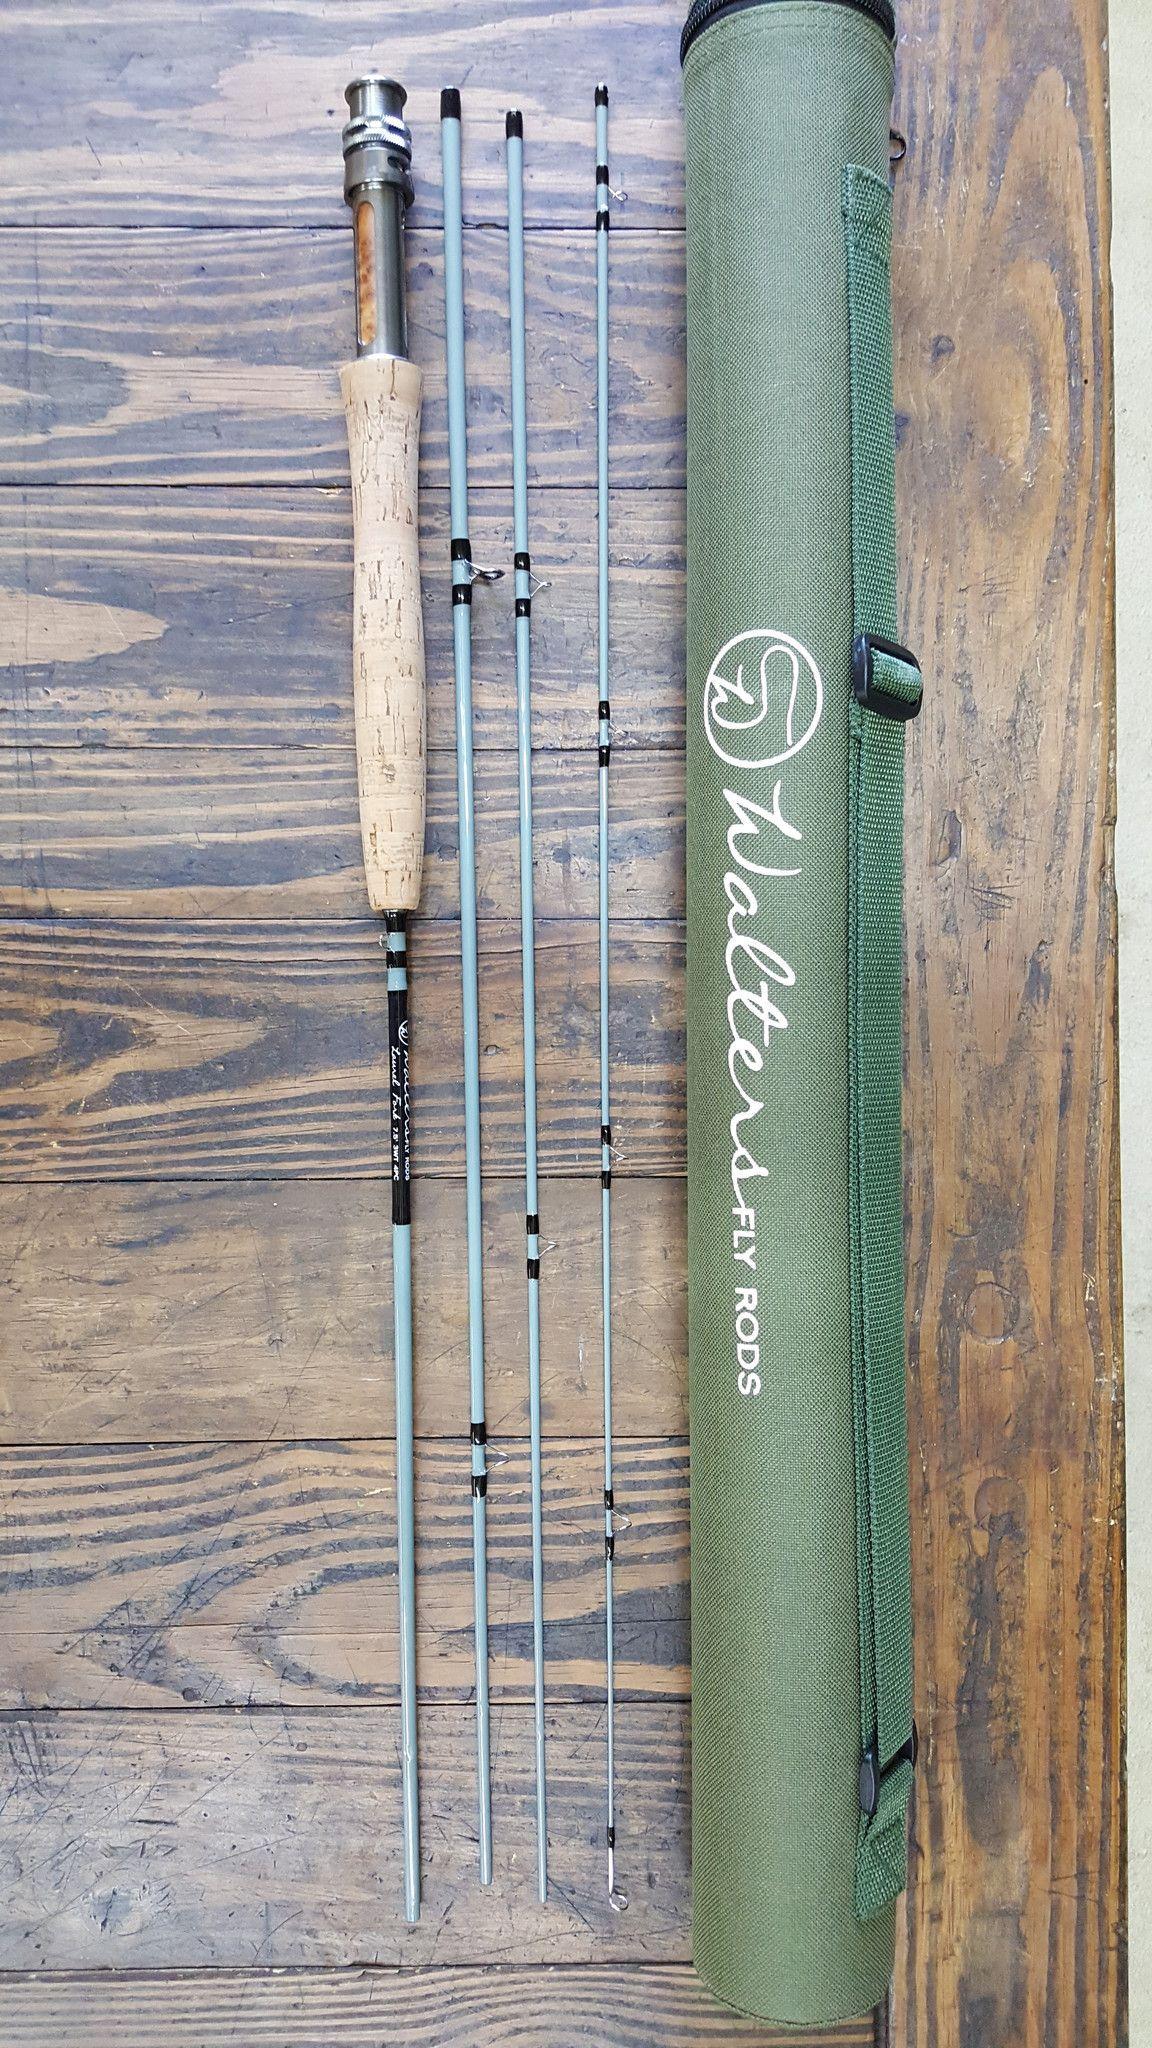 Walter S Fly Rod Laurel Fork 7 5ft 3 Weight Fly Rods Rod Fly Fishing